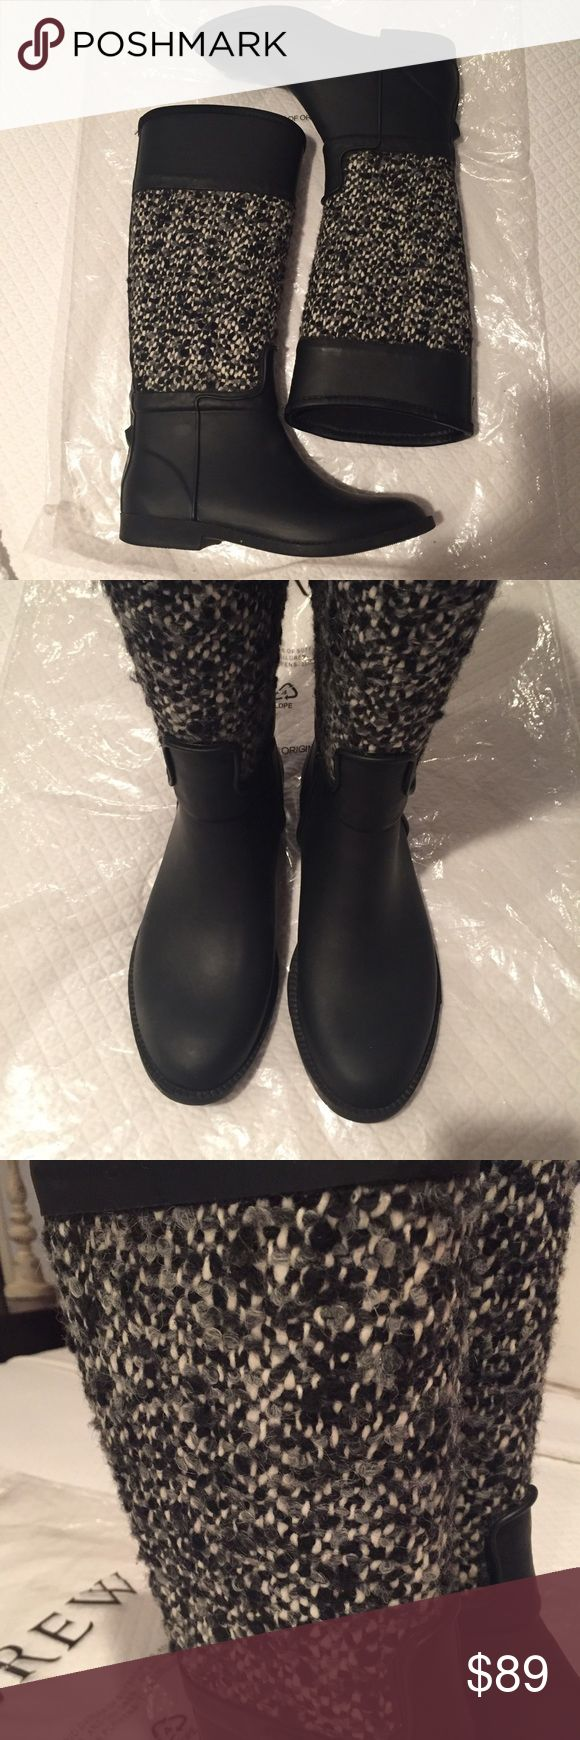 J. Crew black and tweed rain/winter boot J. Crew black and tweed rain/winter boot. Super comfortable and worn only a few times. Have grip at back near bottom for easy slide off J. Crew Shoes Winter & Rain Boots